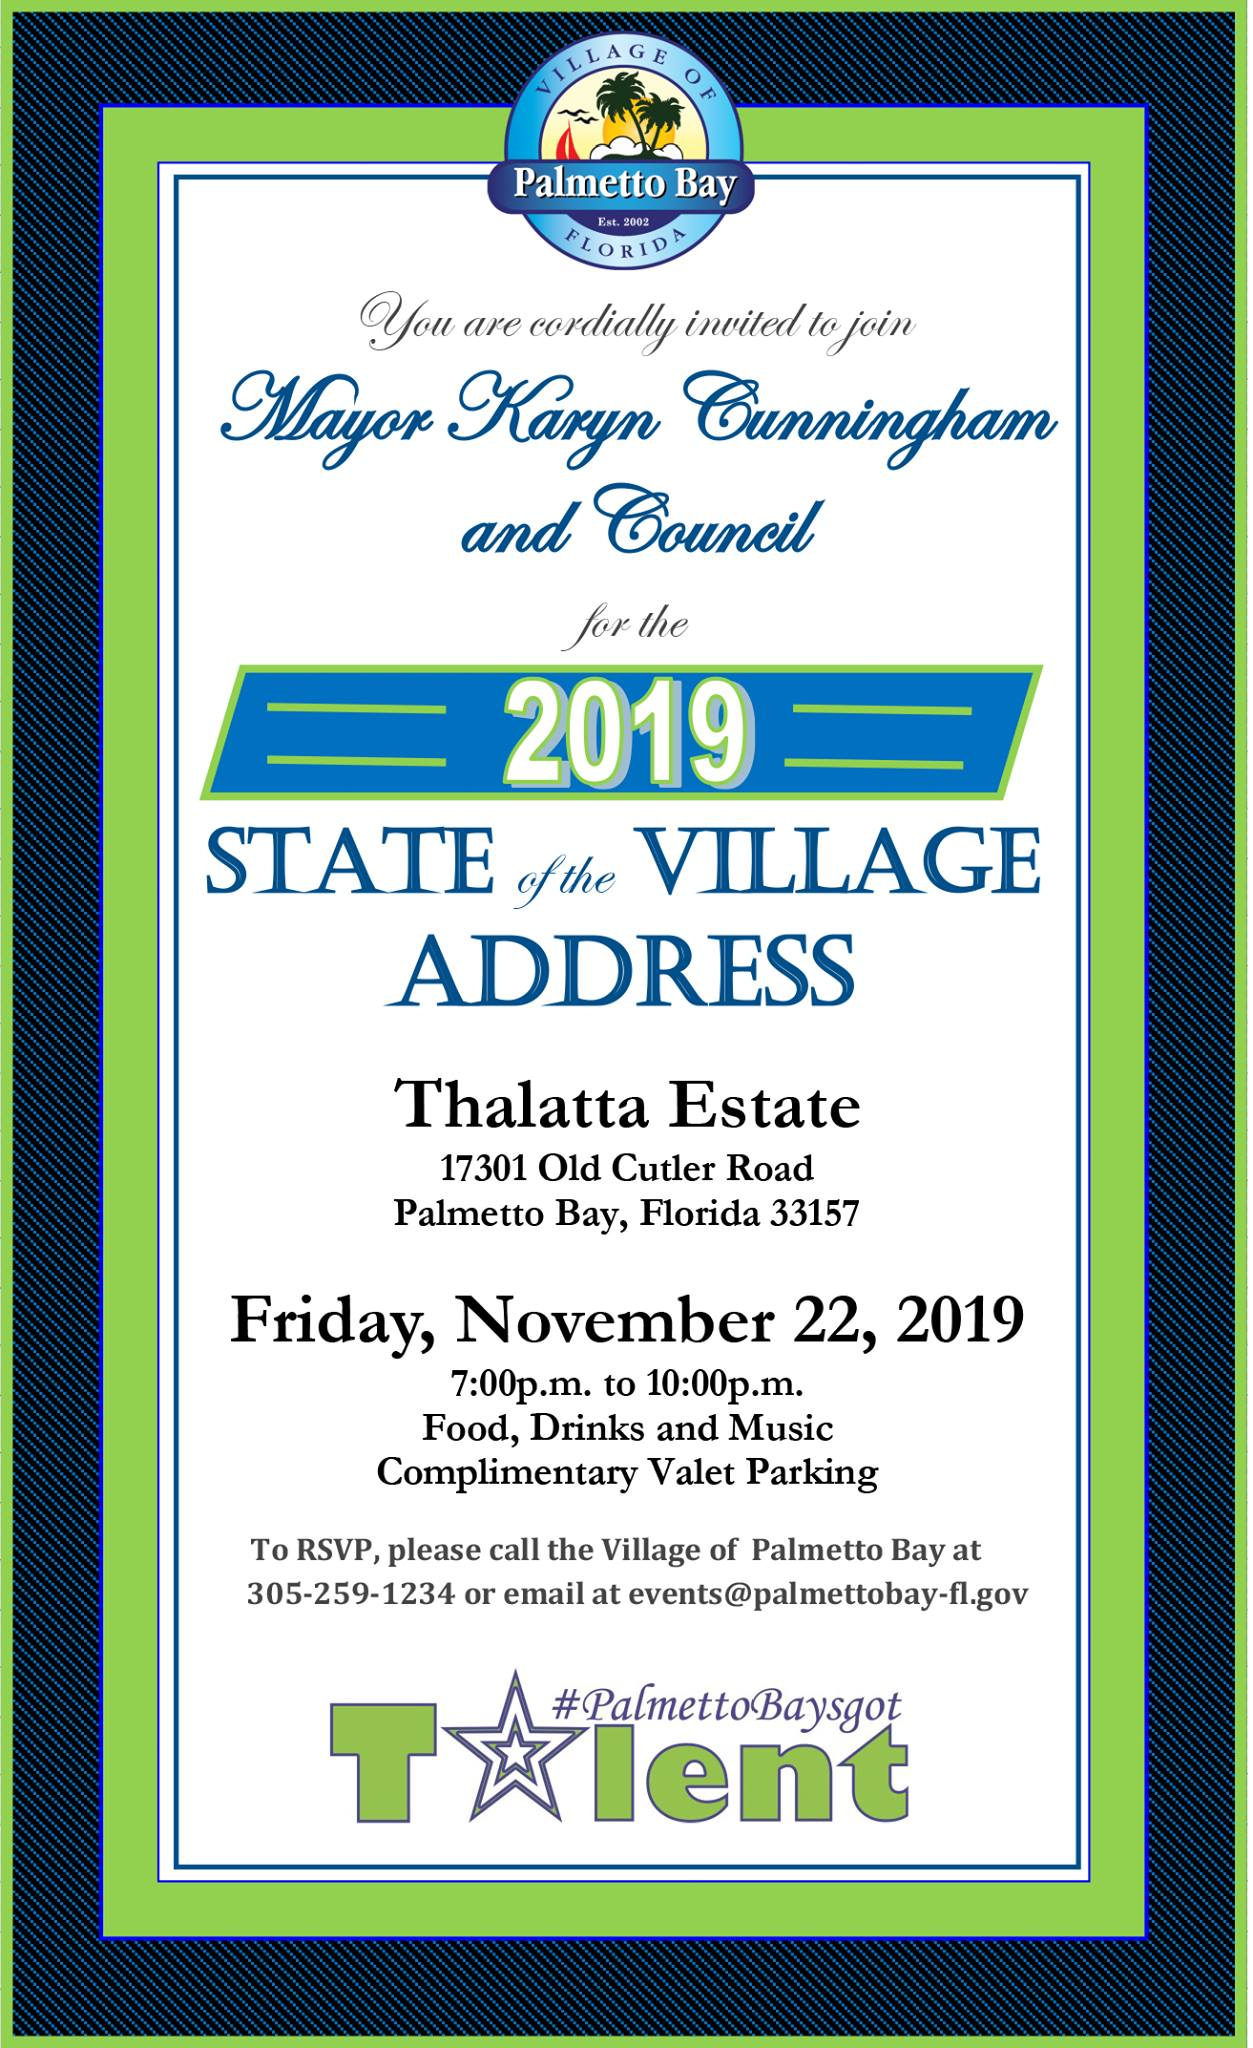 State of the Village Address 2019 Invitation. You are cordially invited to join Mayor Karyn Cunningh